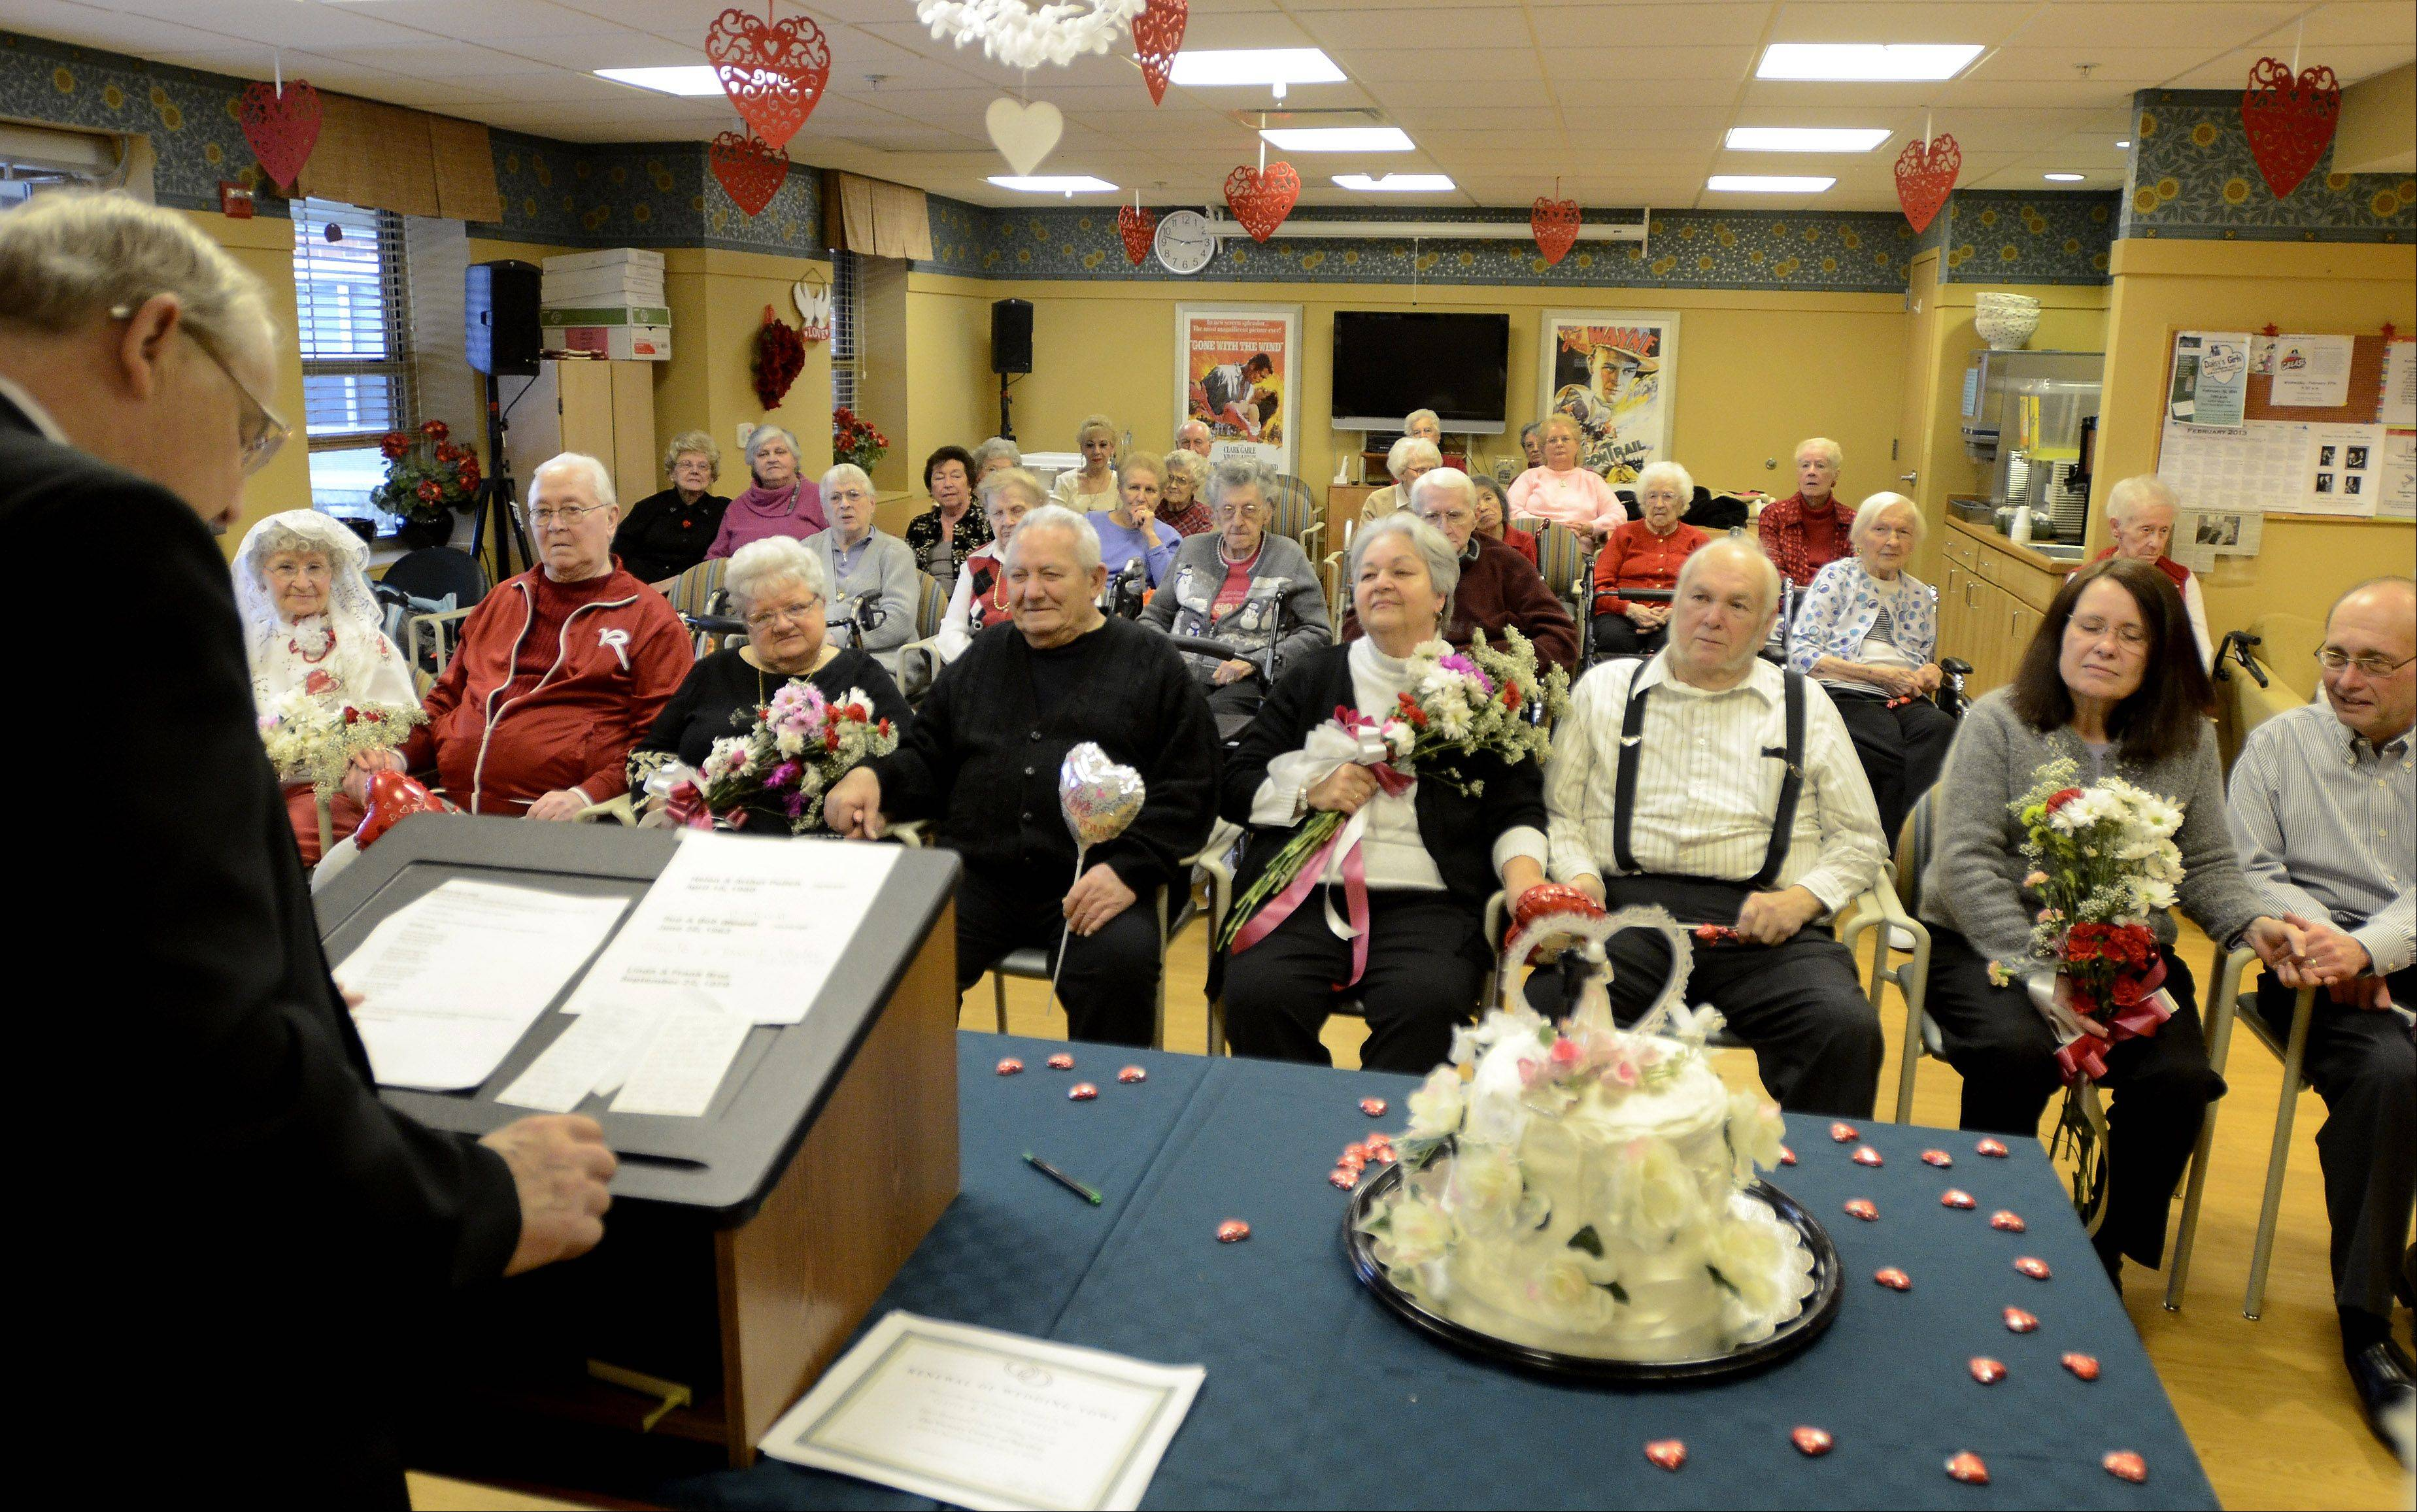 The Rev. Elder Dale presides over couples from left, Helen and Arthur Polich, Sue and Bob Richardi, Gayle and David Voyles and Linda and Frank Broz, who celebrated Valentine's Day by renewing their wedding vows Thursday at Victory Centre of Bartlett.